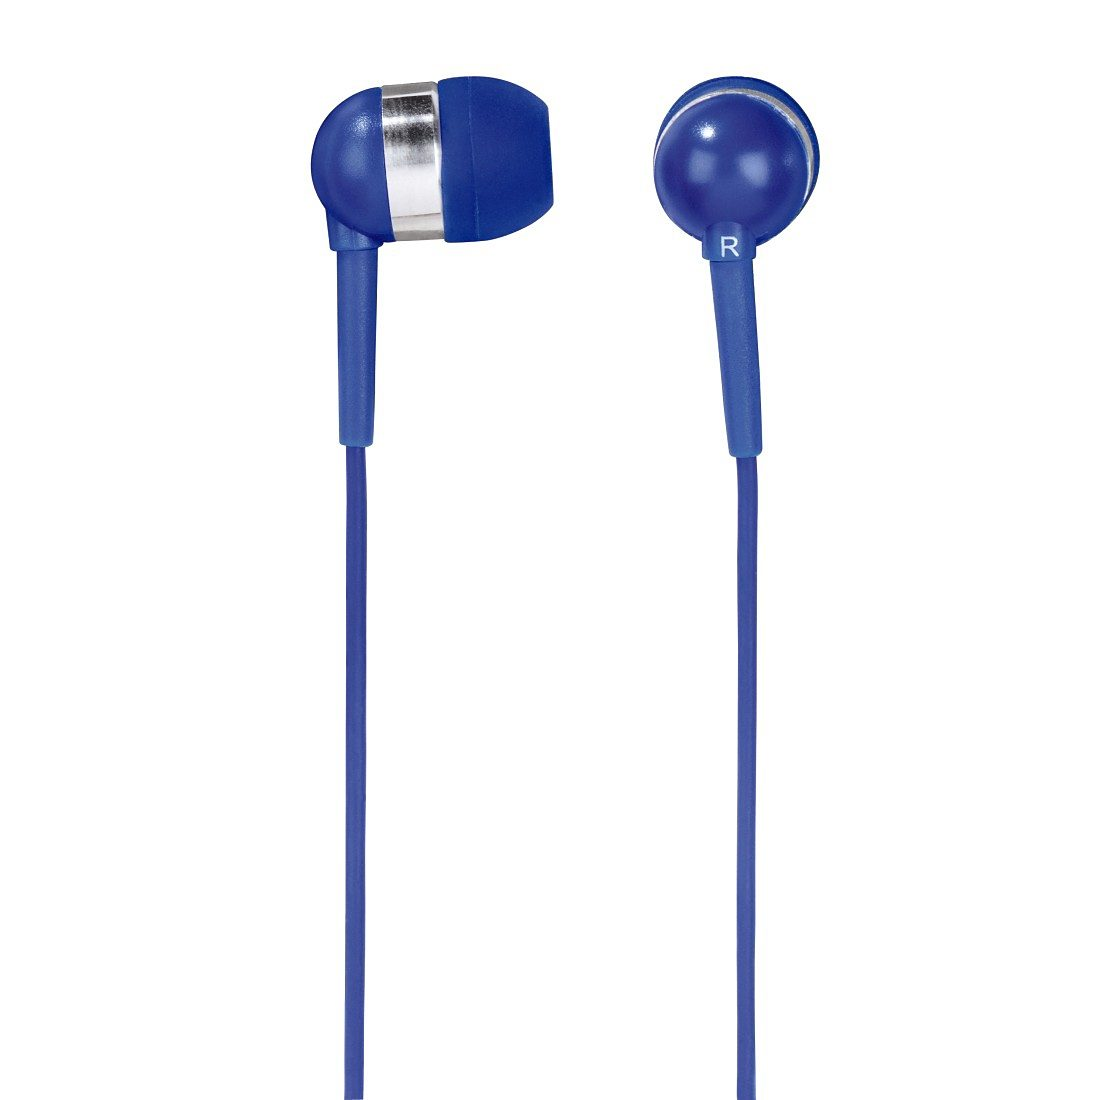 Hama Headset Vivo, Blau